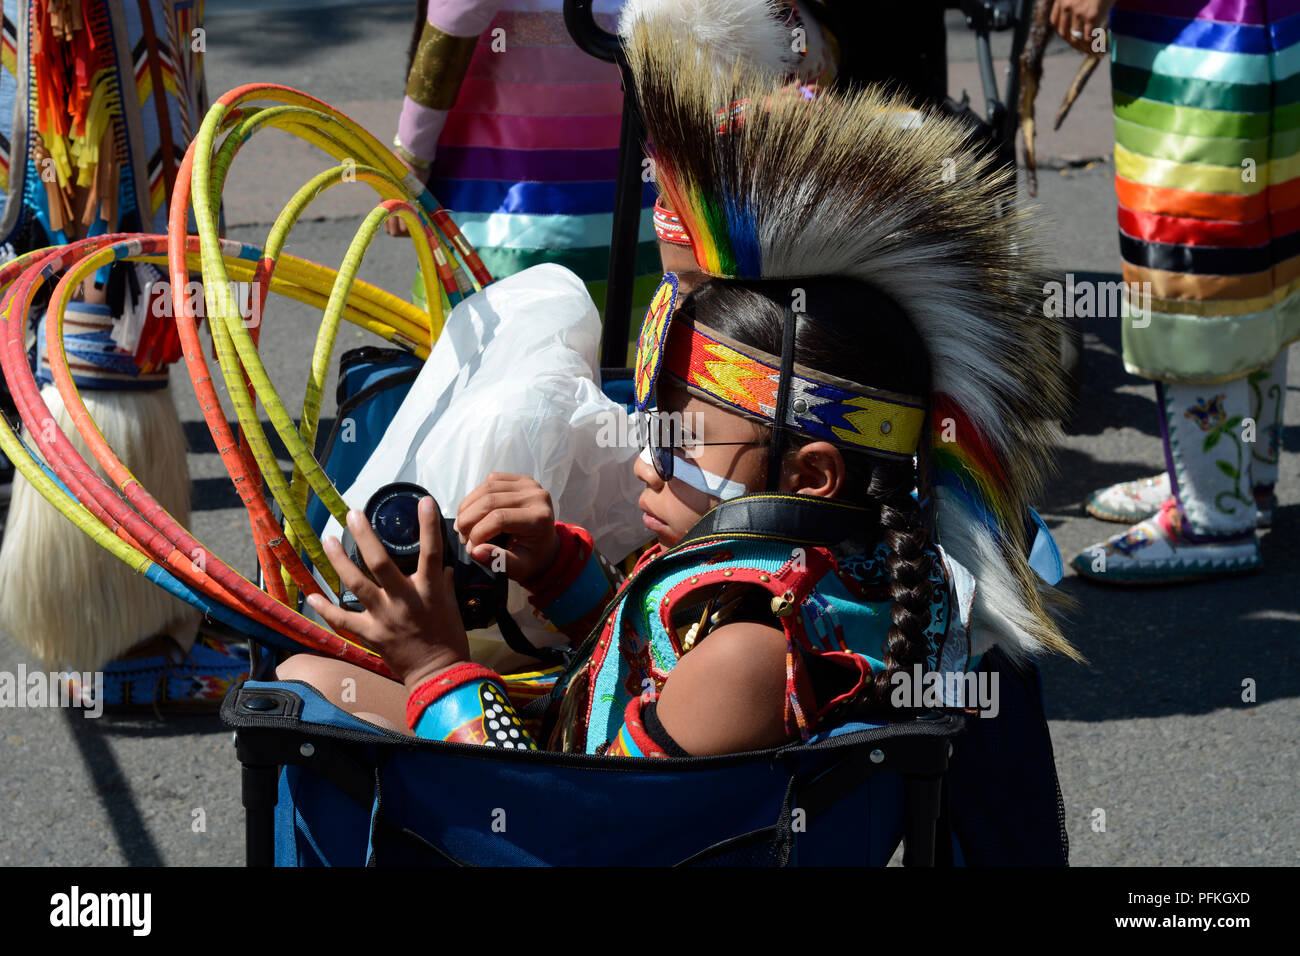 A young Native-American boy wearing traditional Plains Indian regalia at the Santa Fe Indian Market. - Stock Image